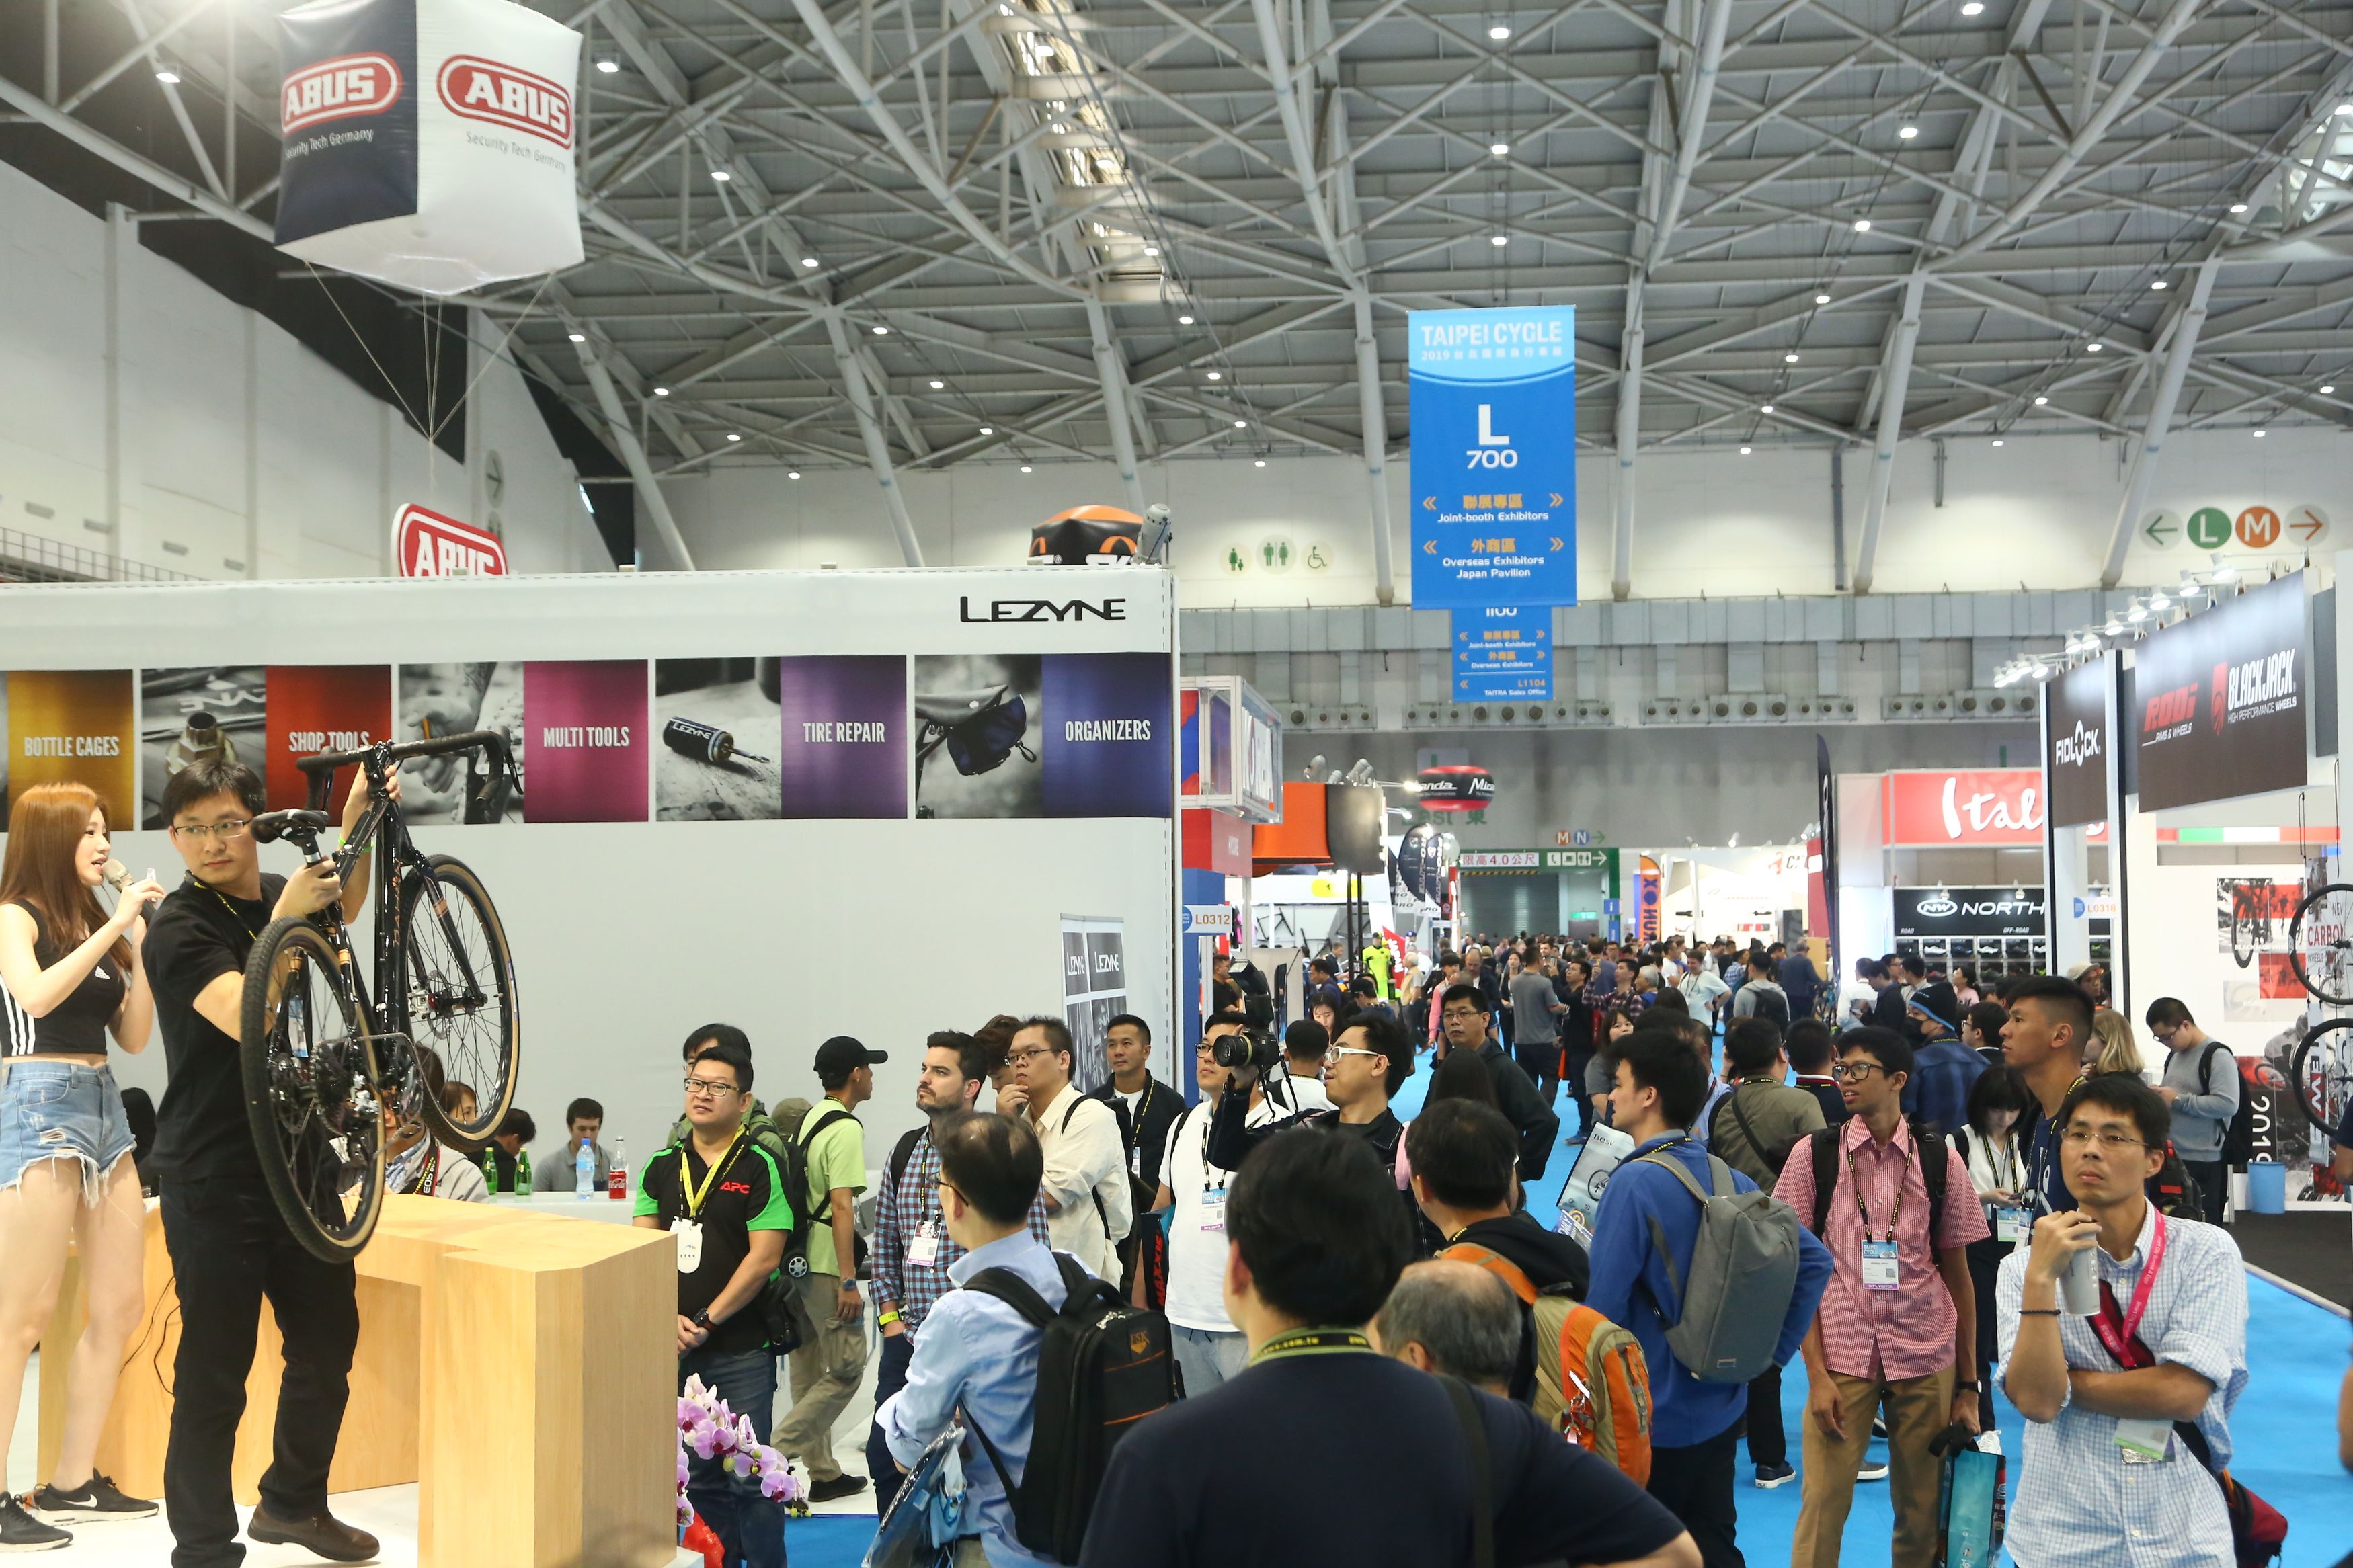 https://storage.googleapis.com/www.taiwantradeshow.com.tw/model/photo/CC/2019/PH00033642-name.jpg